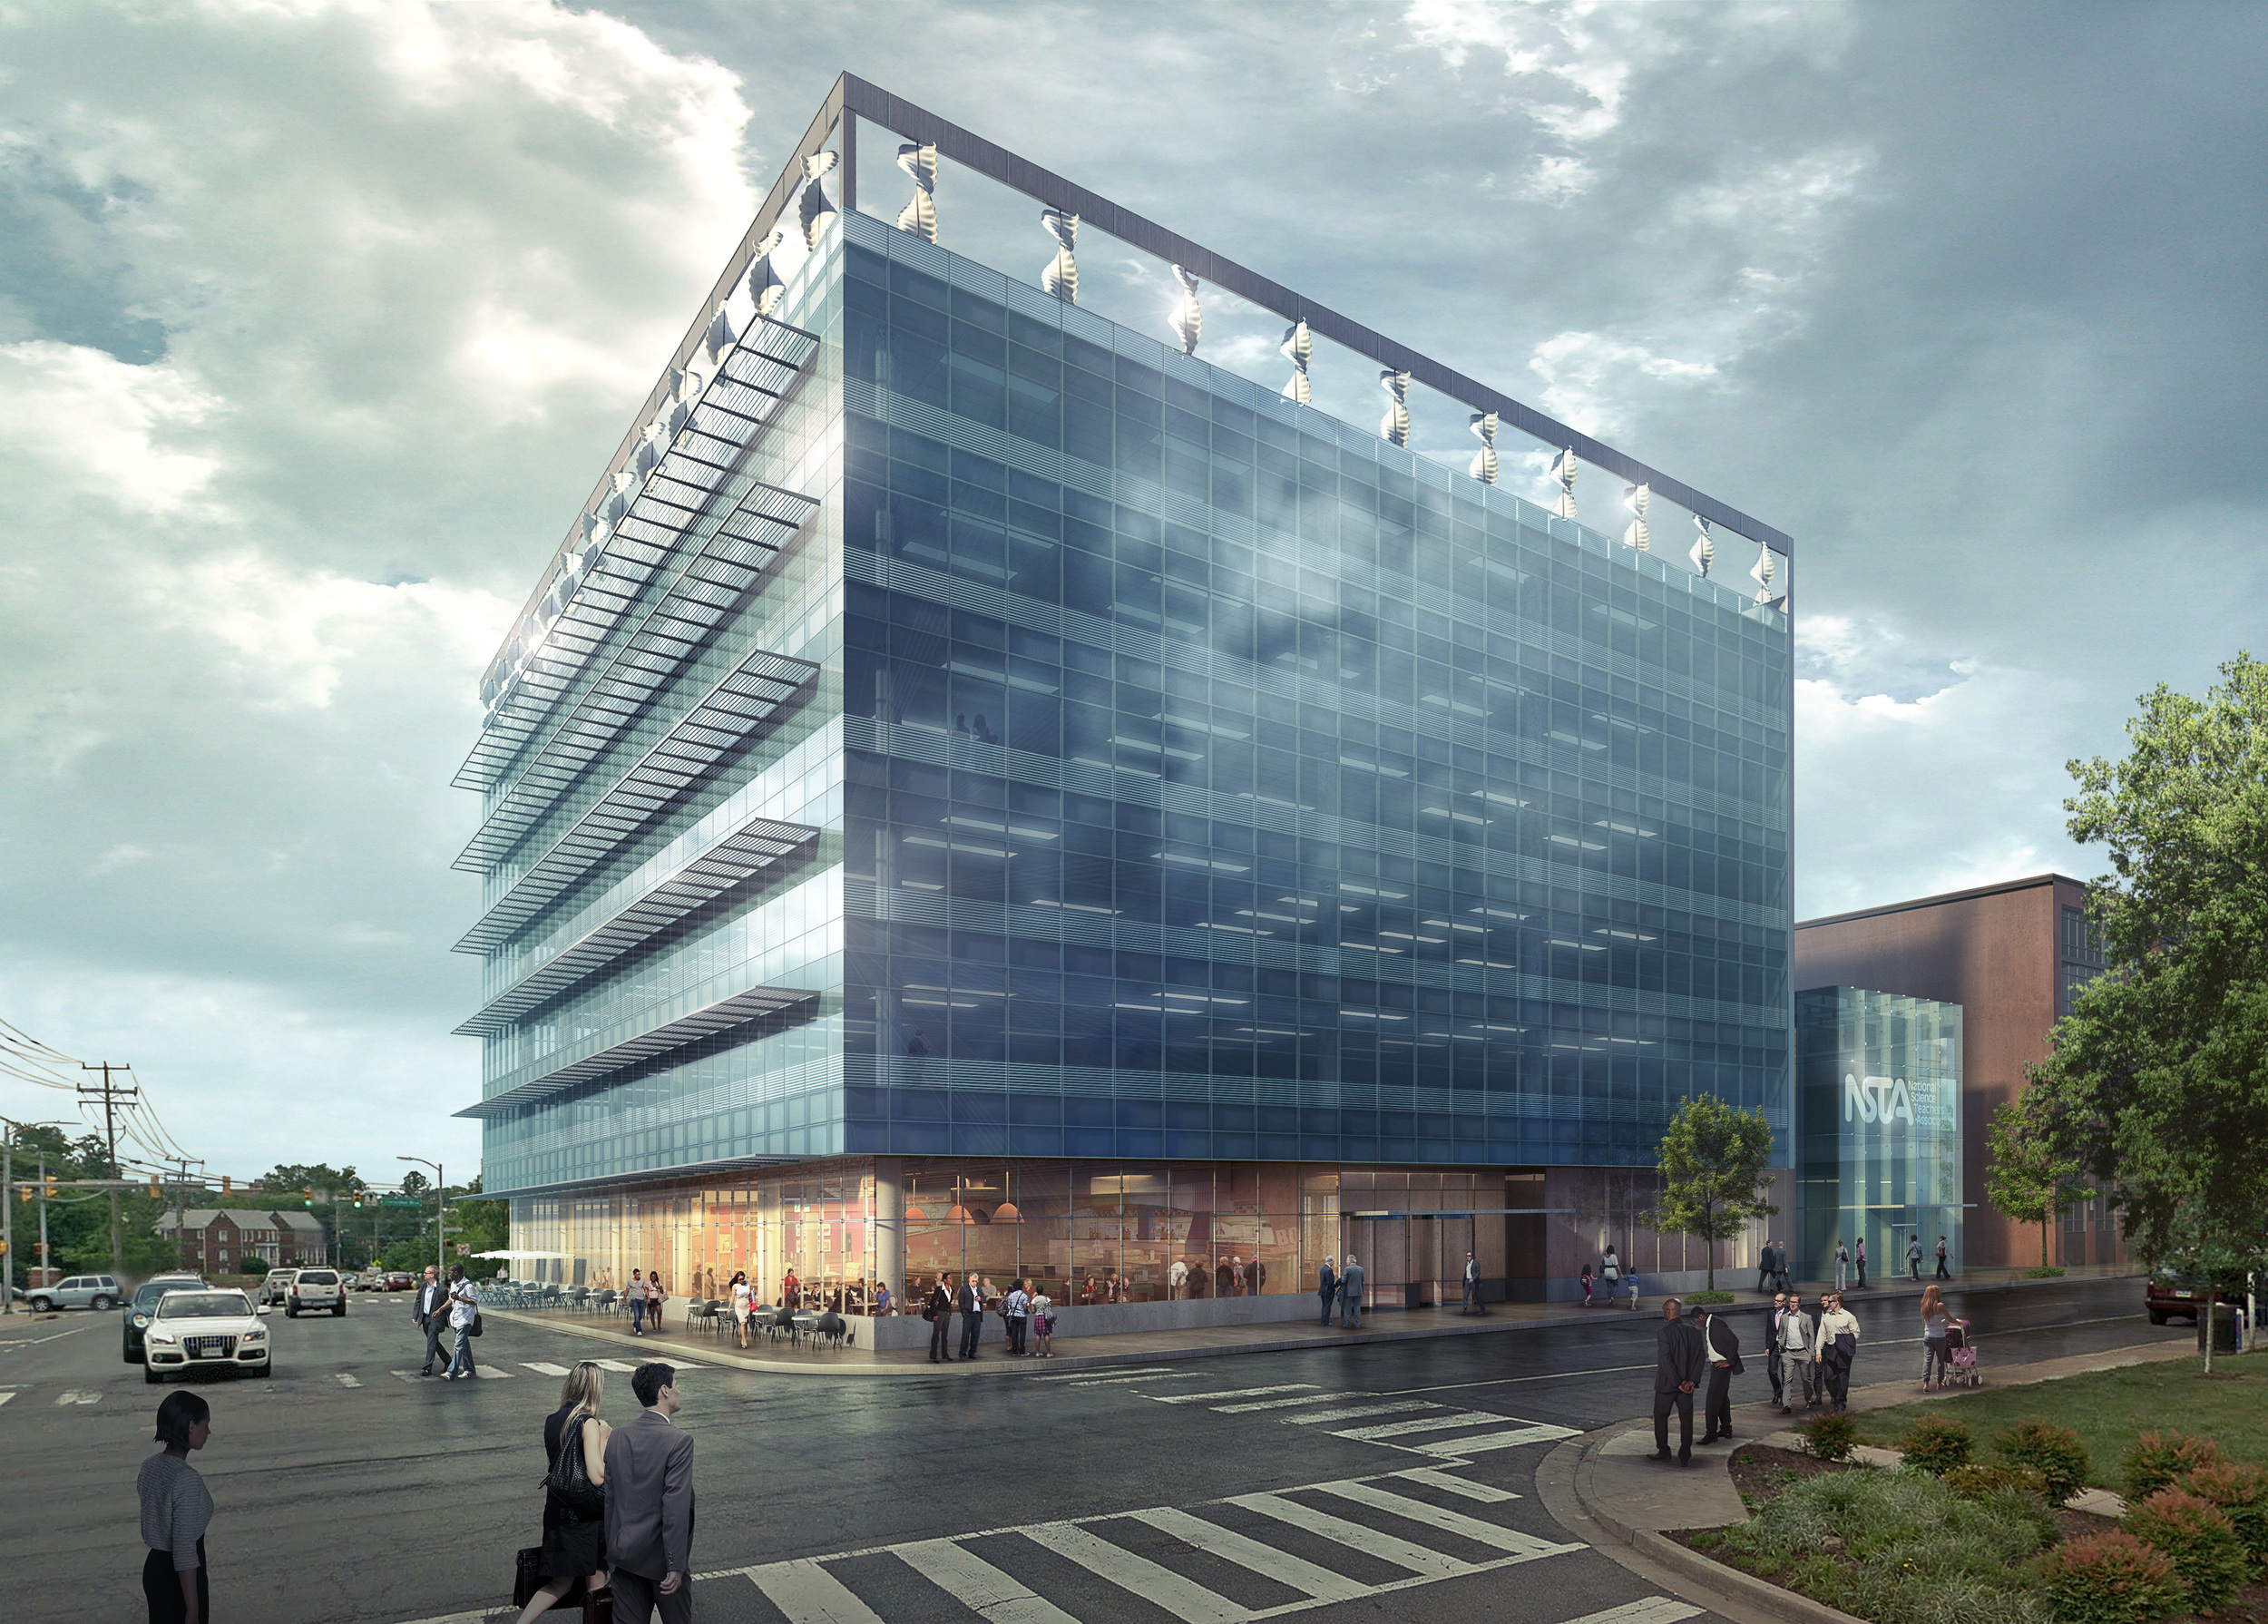 1836 WILSON BLVD CONCEPT  Arlington, VA |  Image courtesy of Gensler